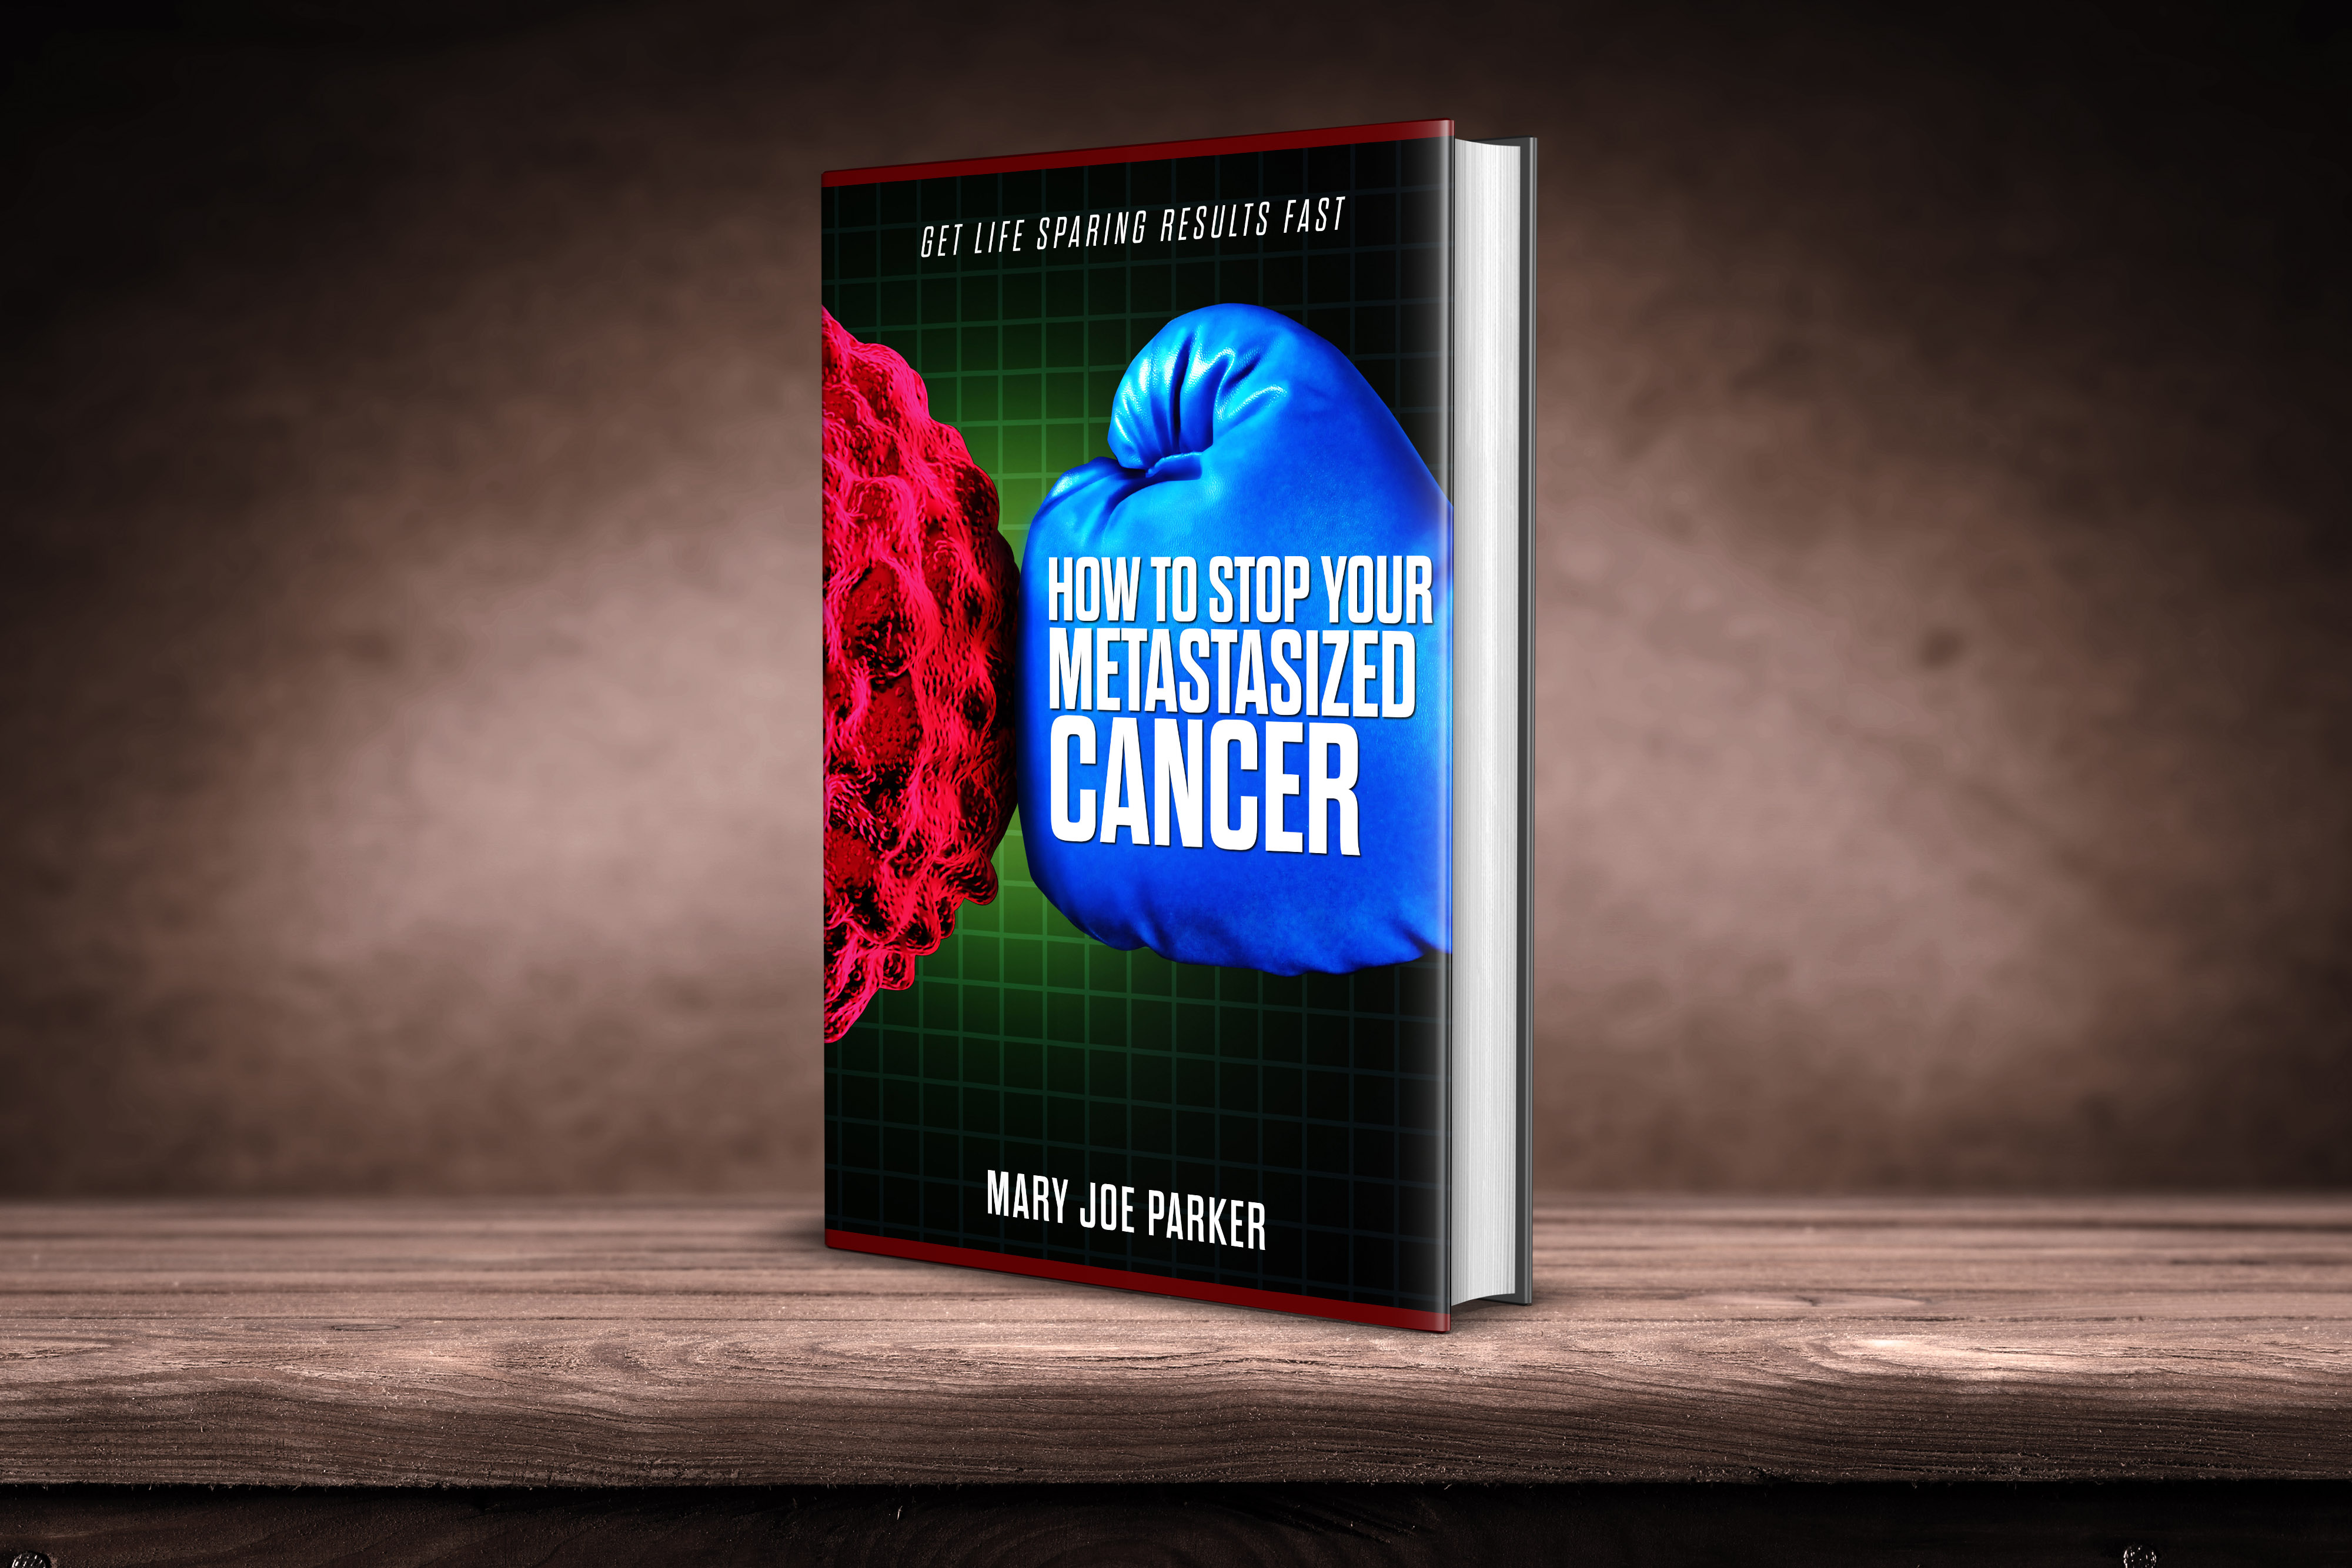 How to Stop Your Metastasized Cancer